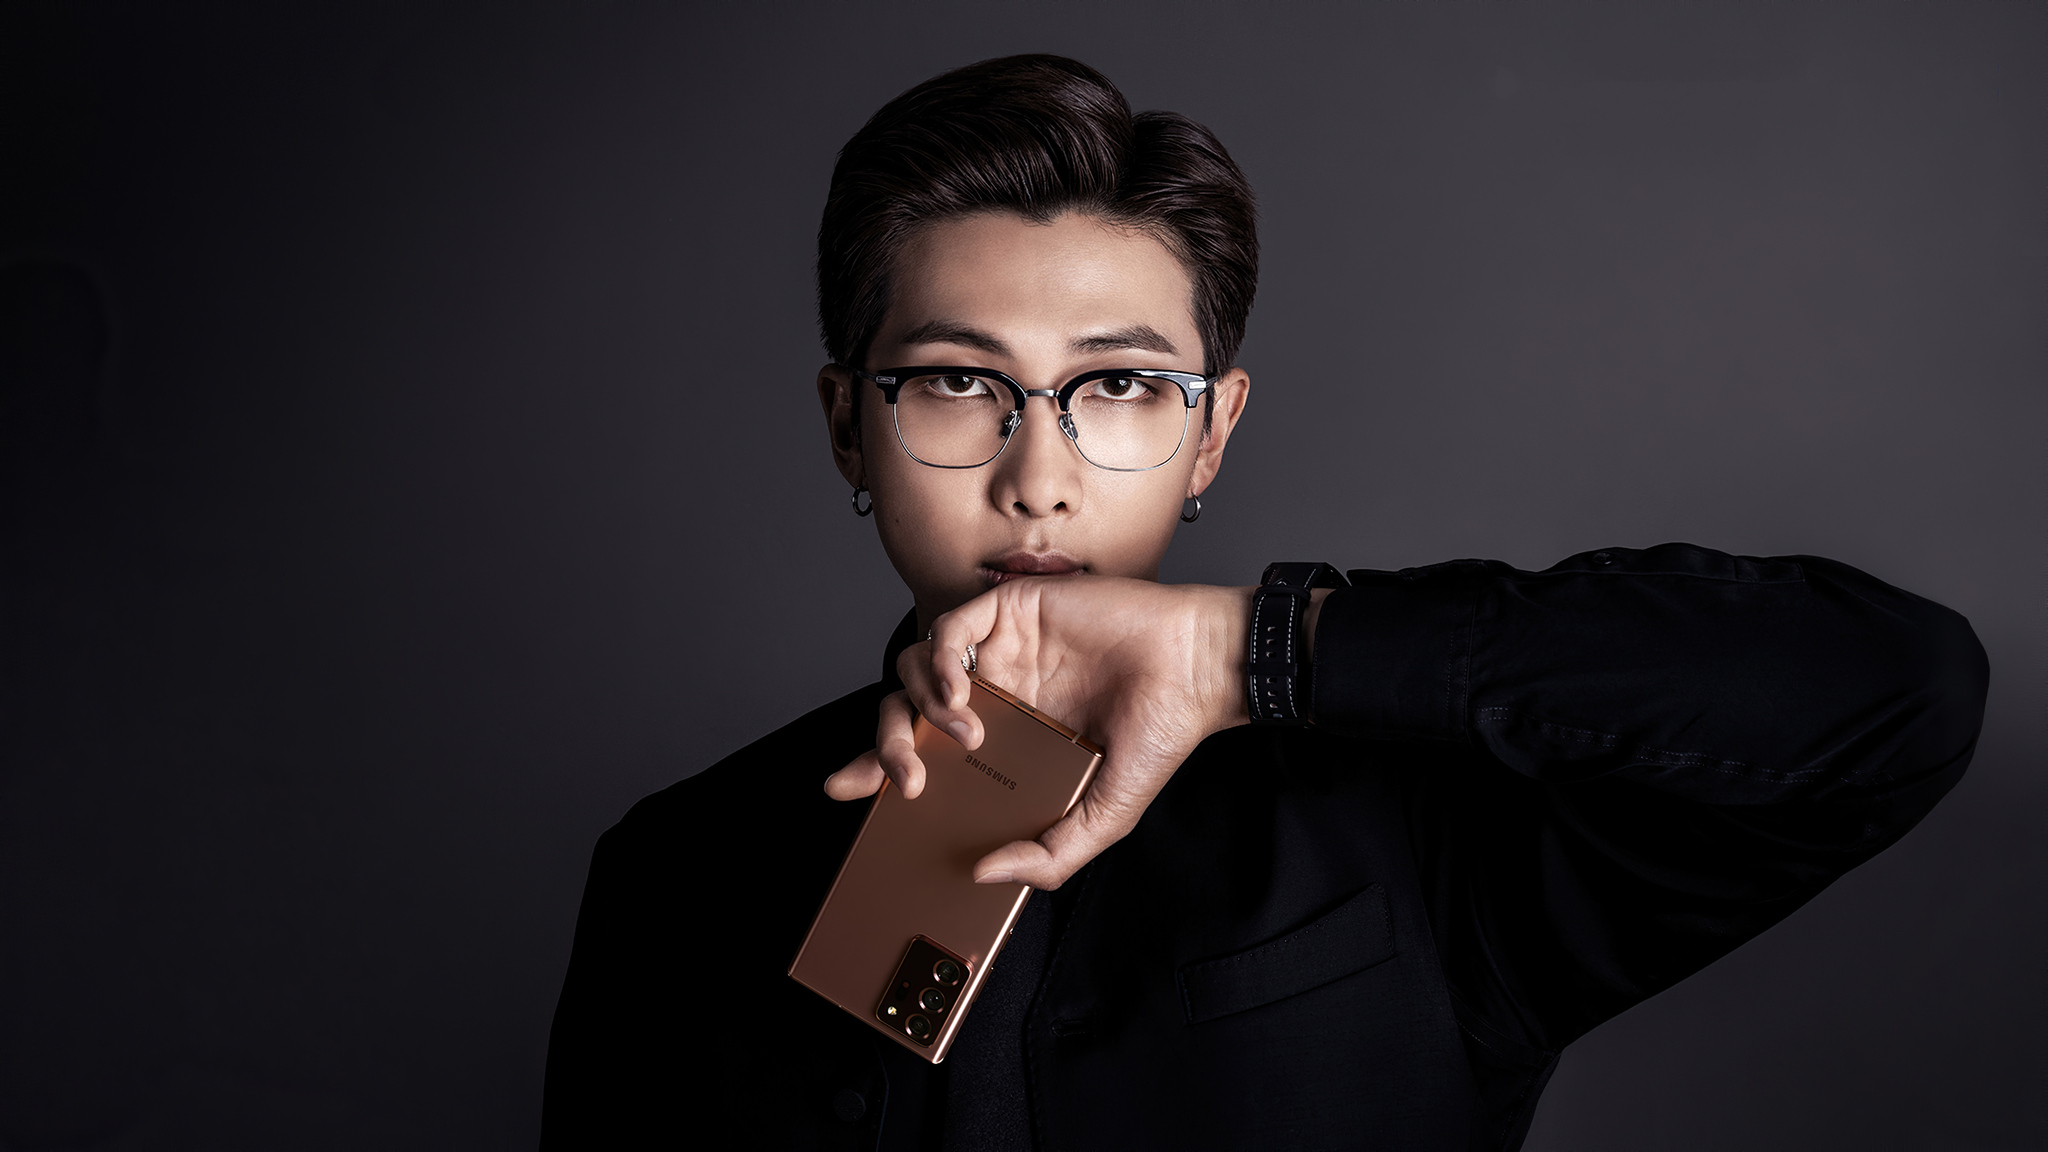 2048x1152 BTS Rm Samsung Galaxy Note 20 2048x1152 Resolution HD 4k Wallpapers, Images ...